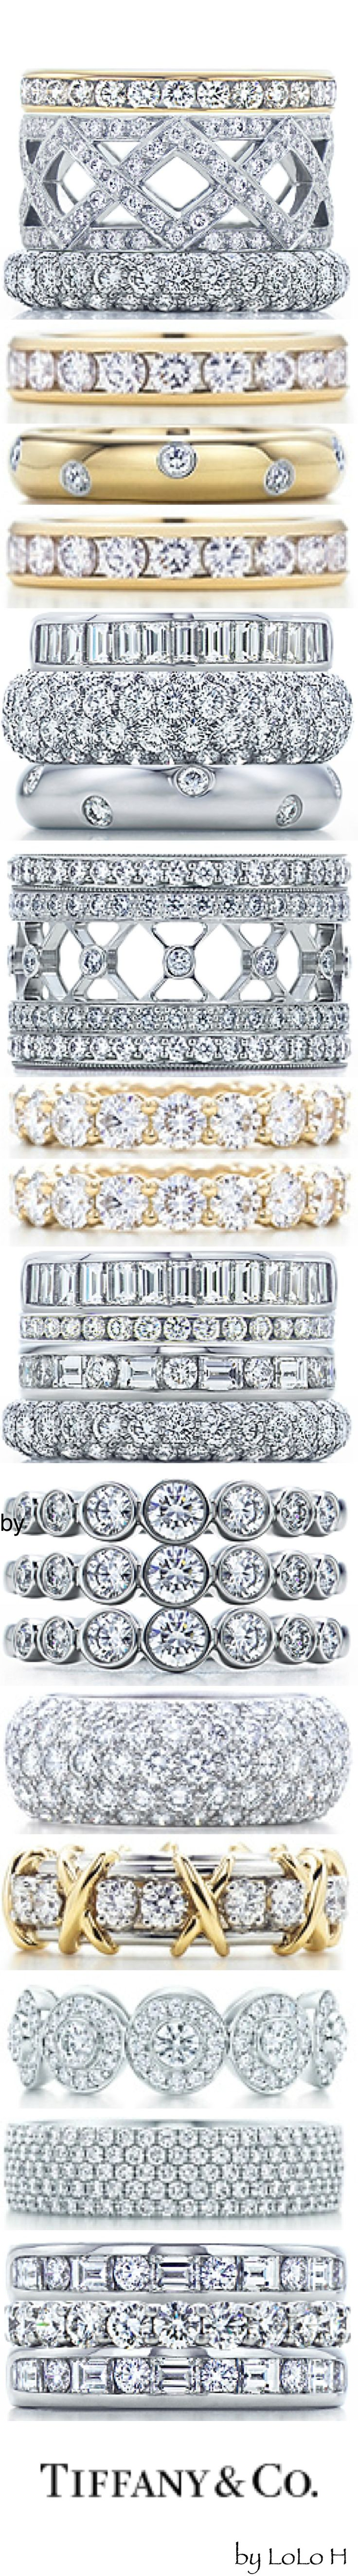 Tiffany & Co., engagment rings, wedding rings, gold rings, platinum rings, diamond